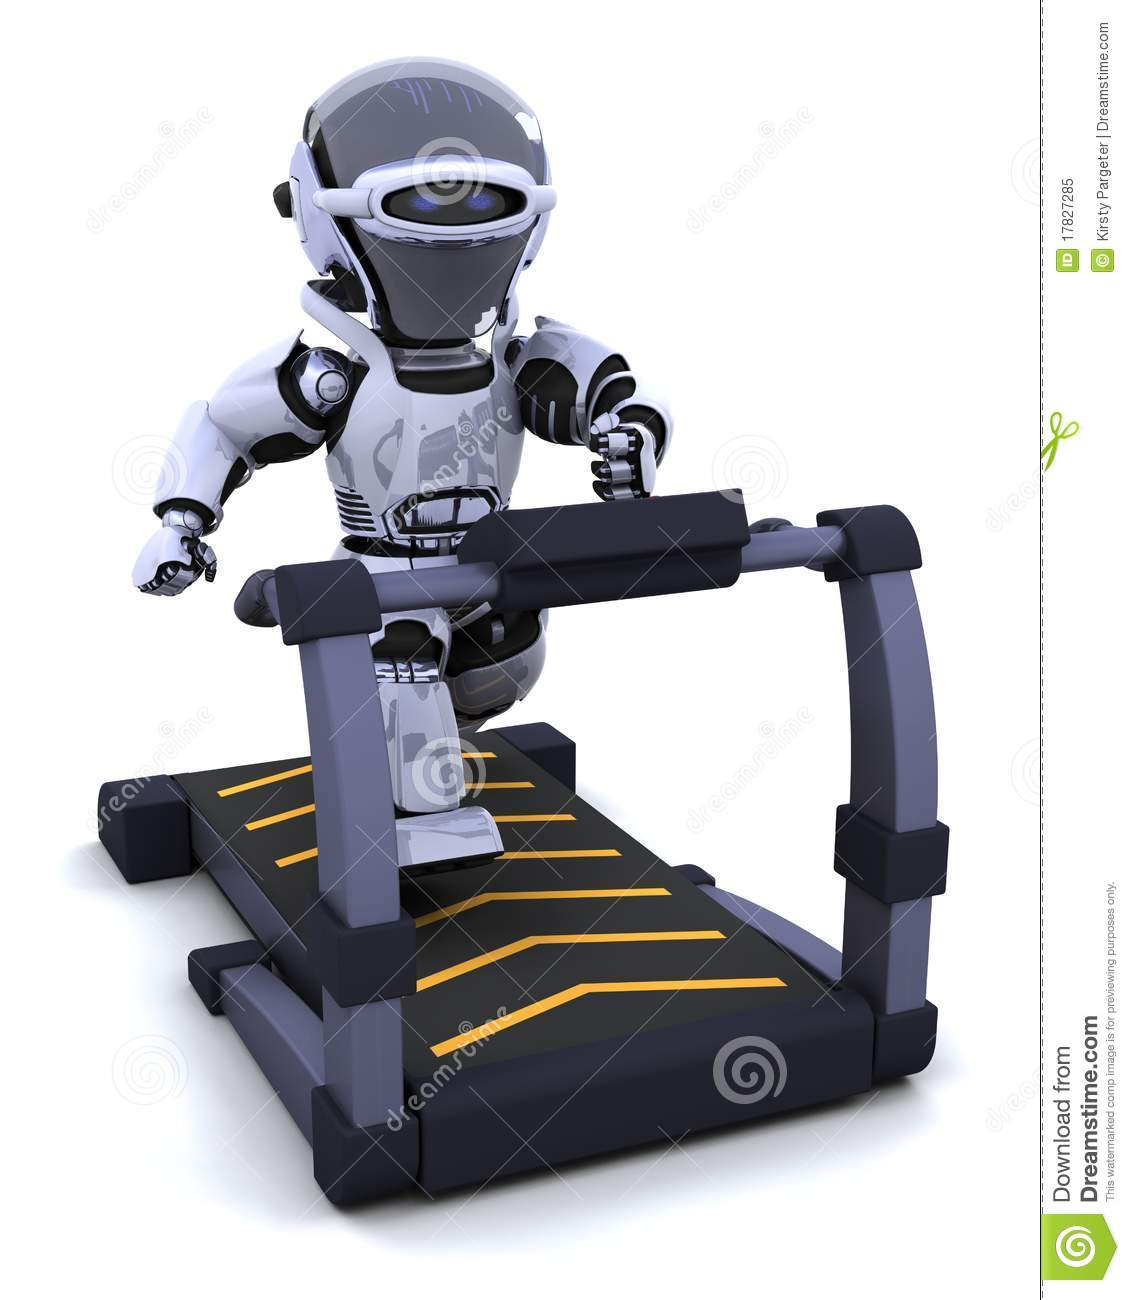 Treadmill Royalty Free Stock Photo   Image  17827285